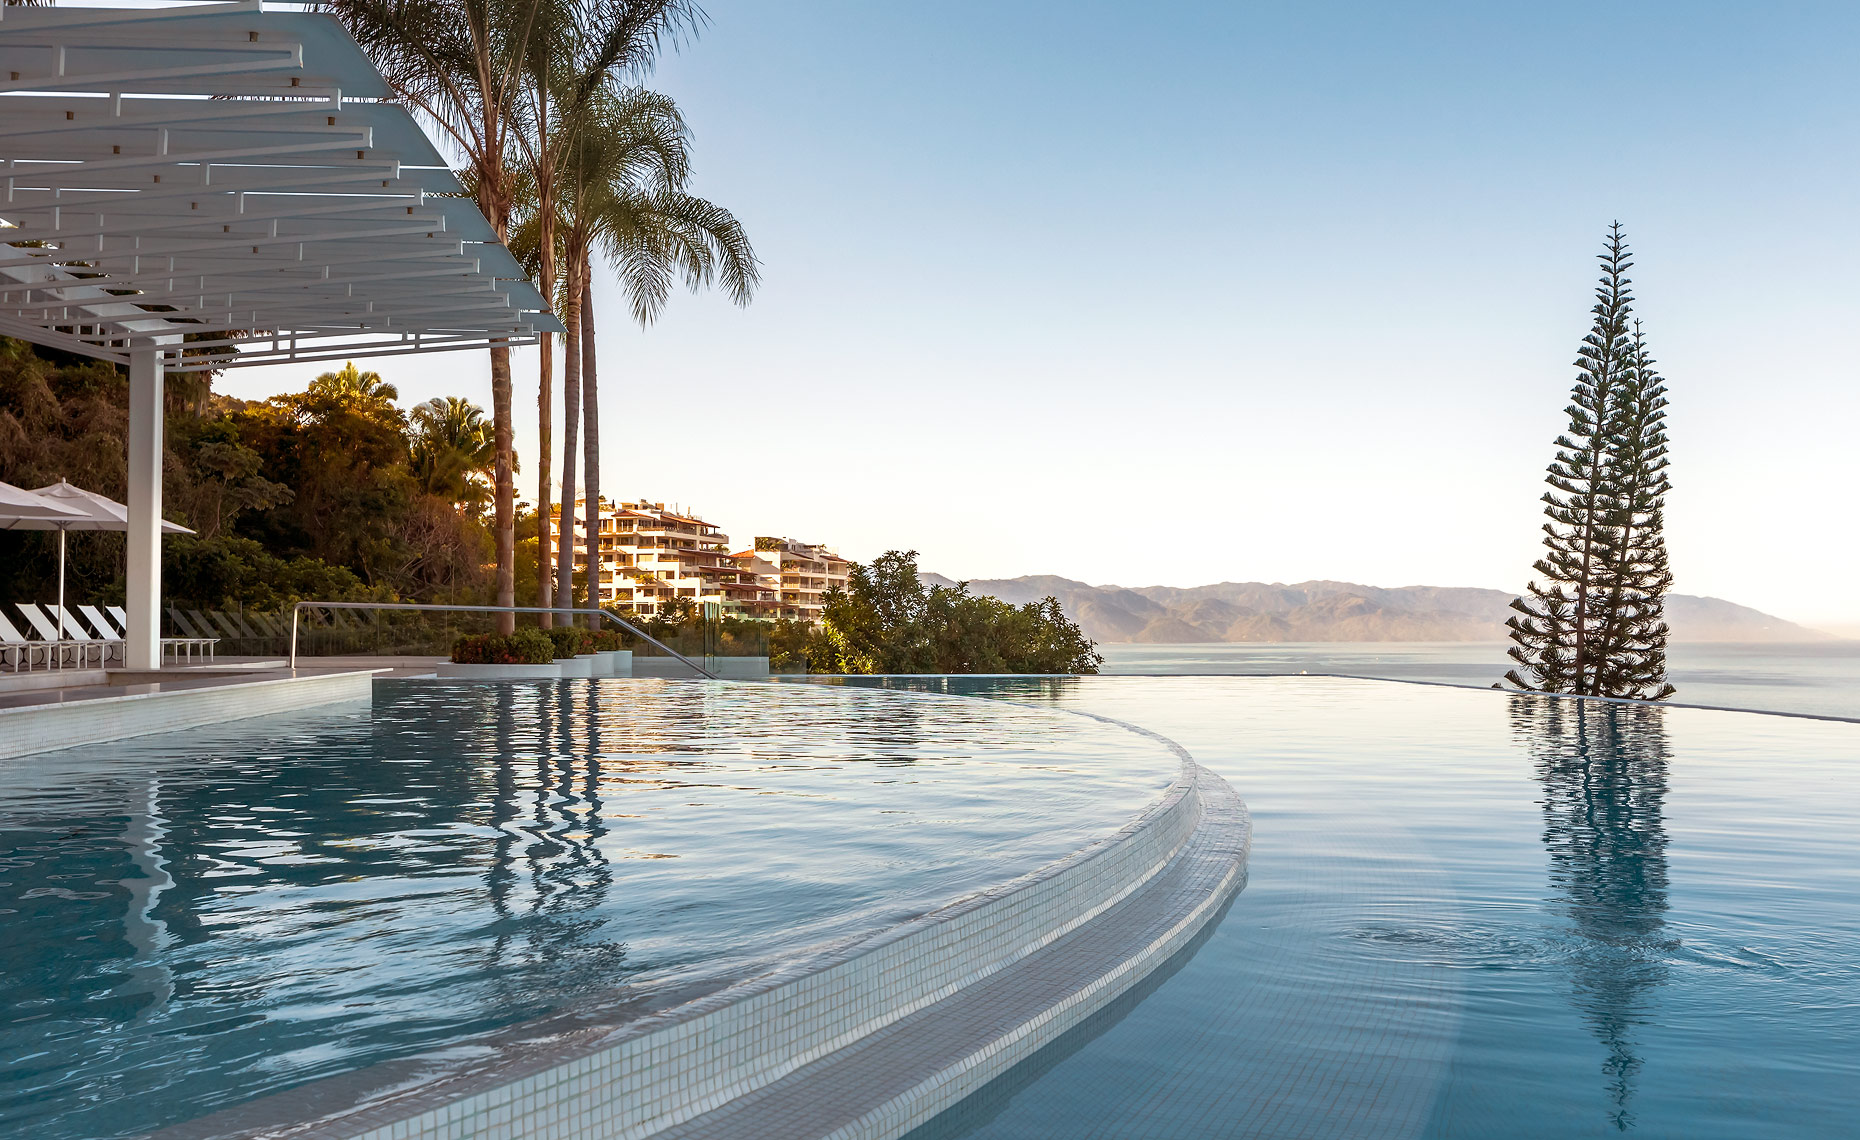 The Avalon Pool, Puerto Vallarta, Mexico